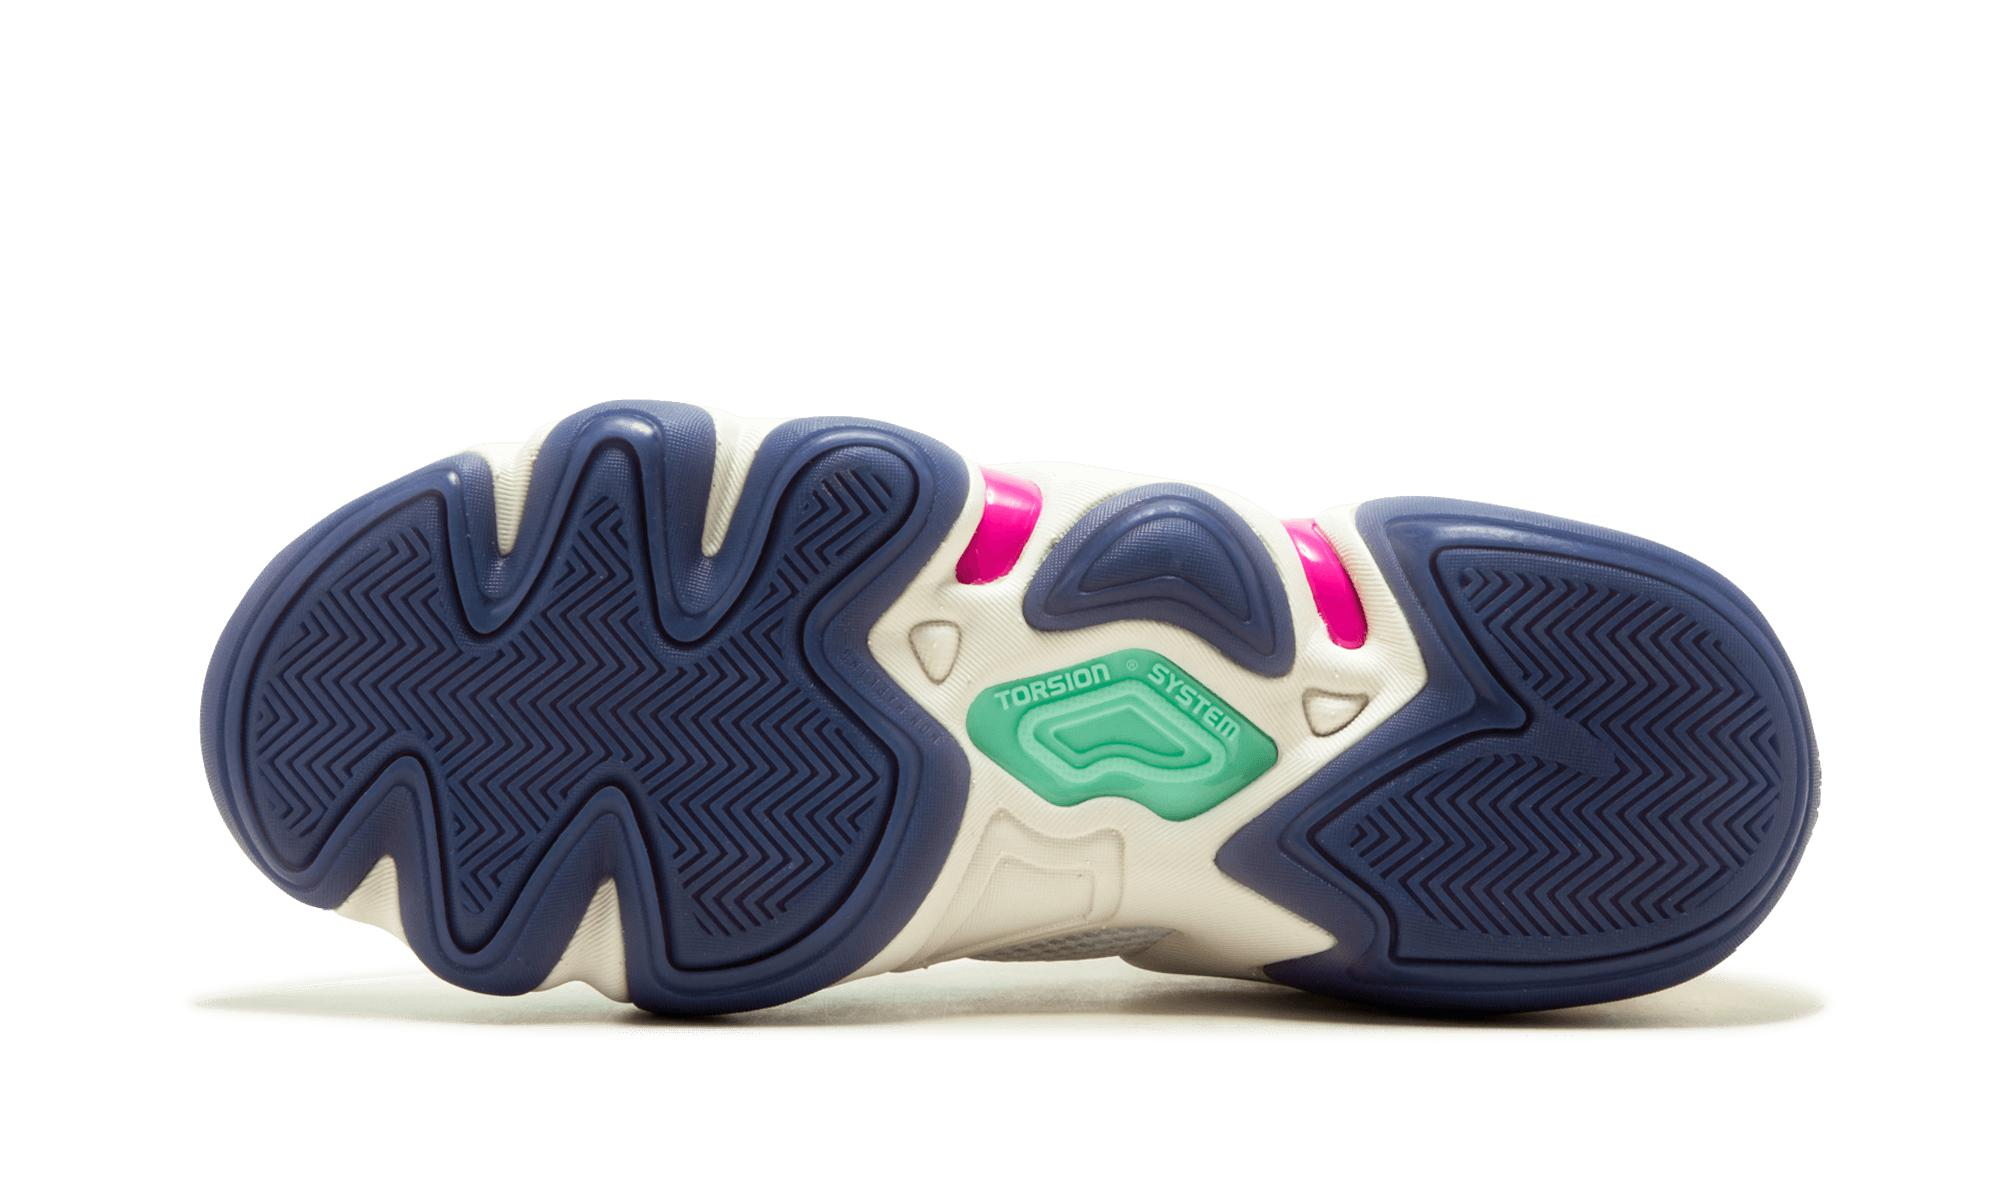 buy popular 42ff1 a441f Adidas - Multicolor Crazy 8 Adv Nicekicks for Men - Lyst. View fullscreen